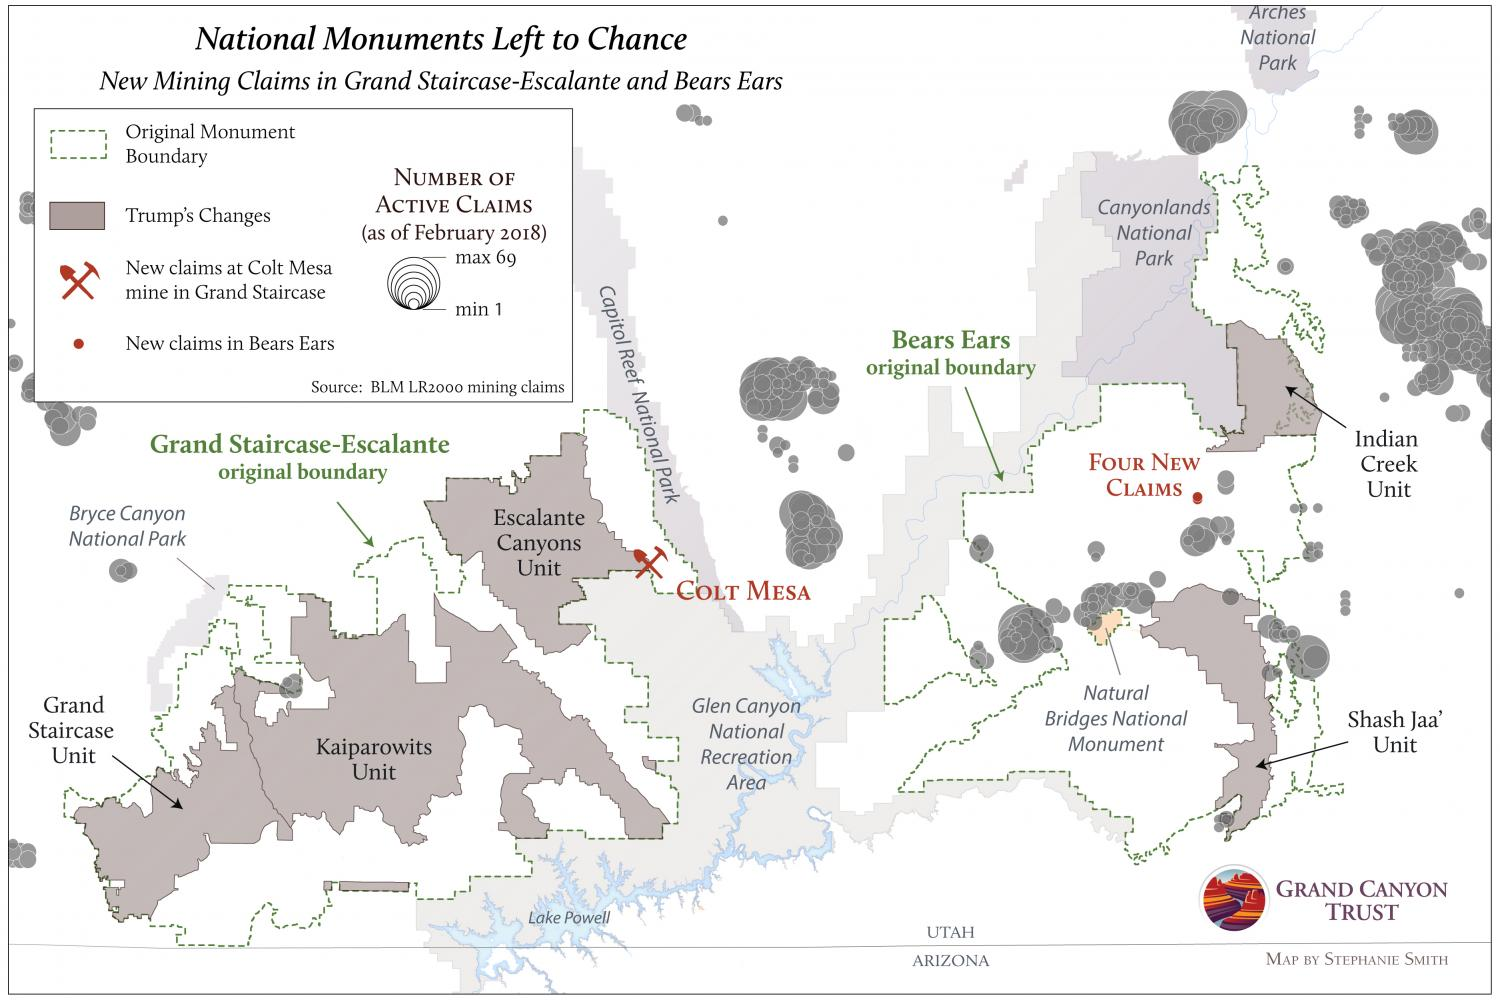 Map of mining claims in national monuments